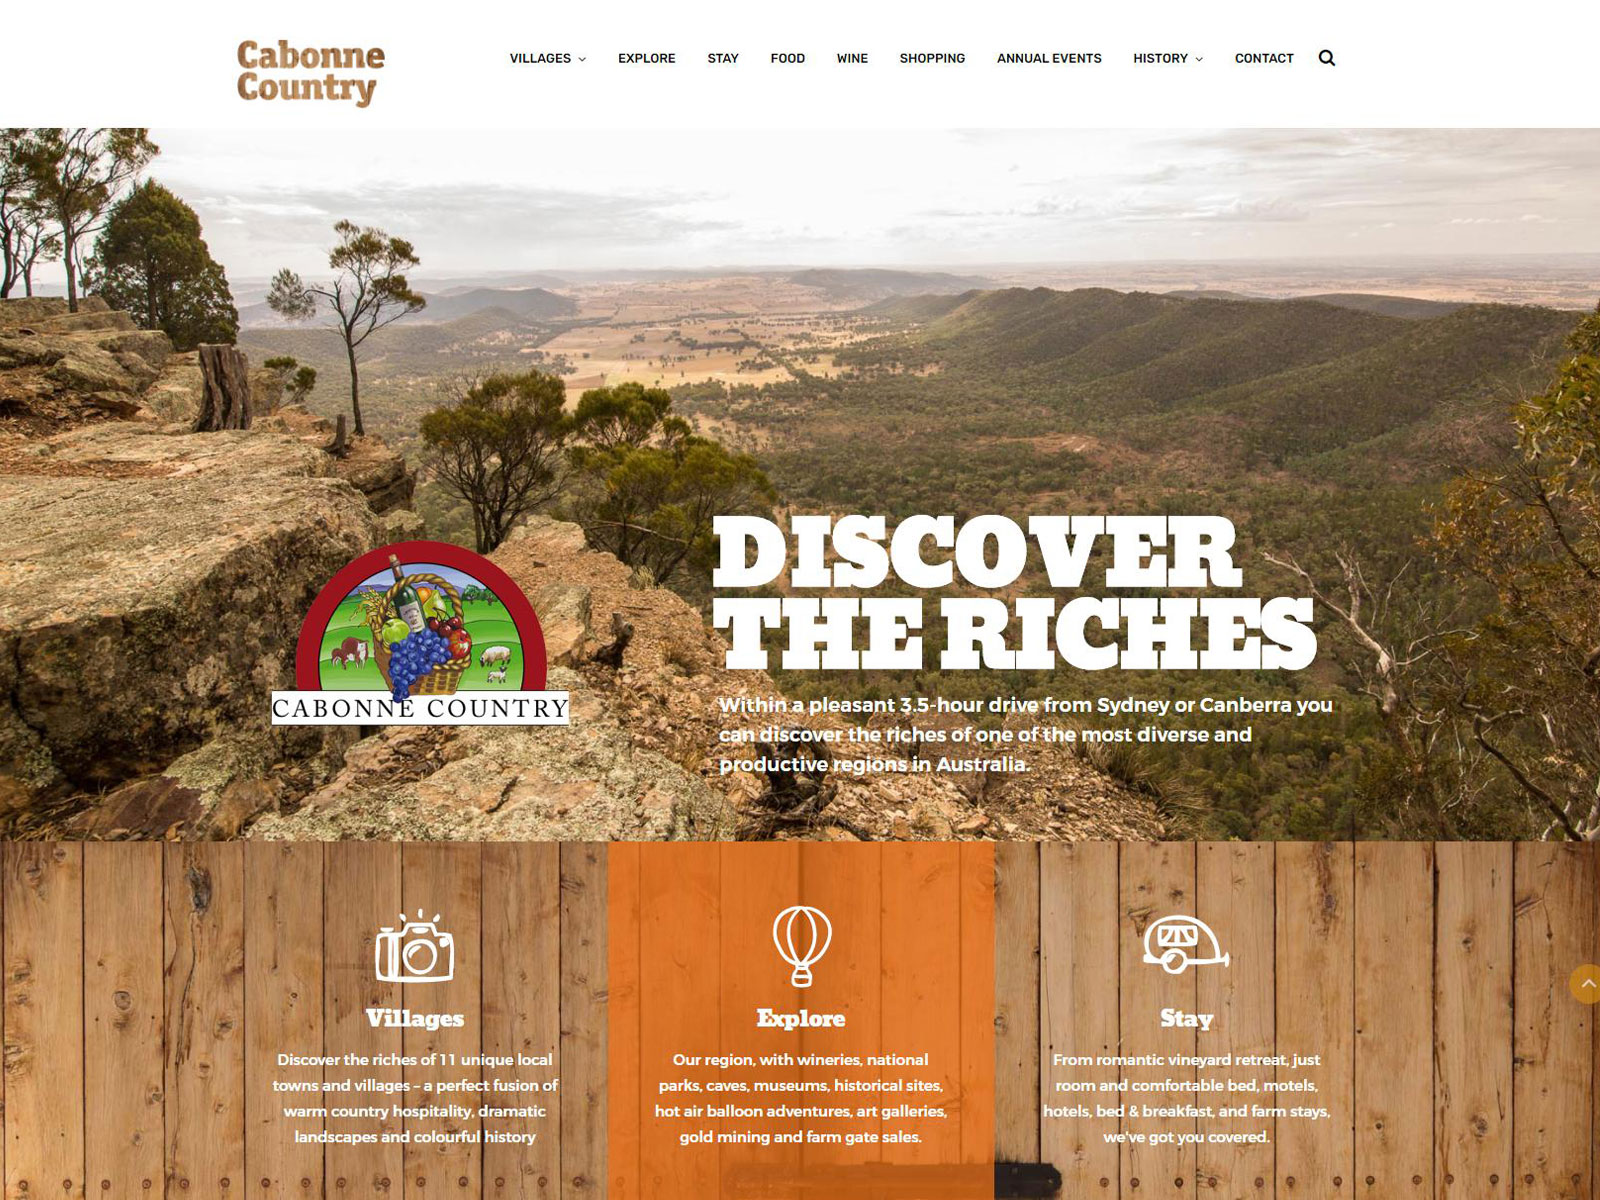 Cabonne Country website